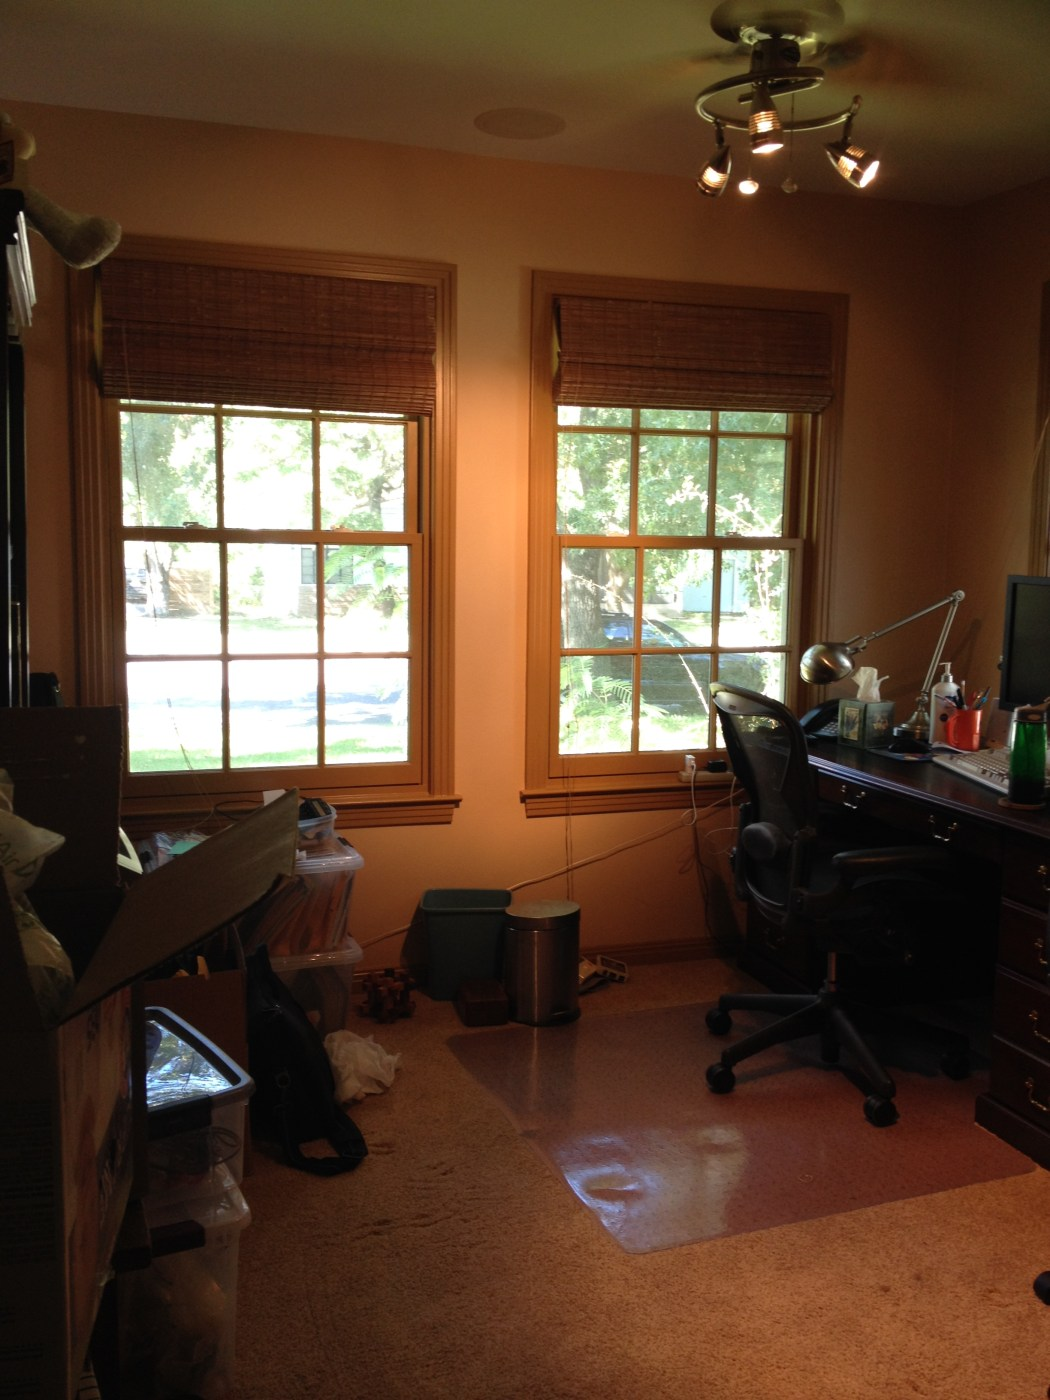 Purging Outdated Technology in a Home Office Closet - Cluttered Home Office Corner